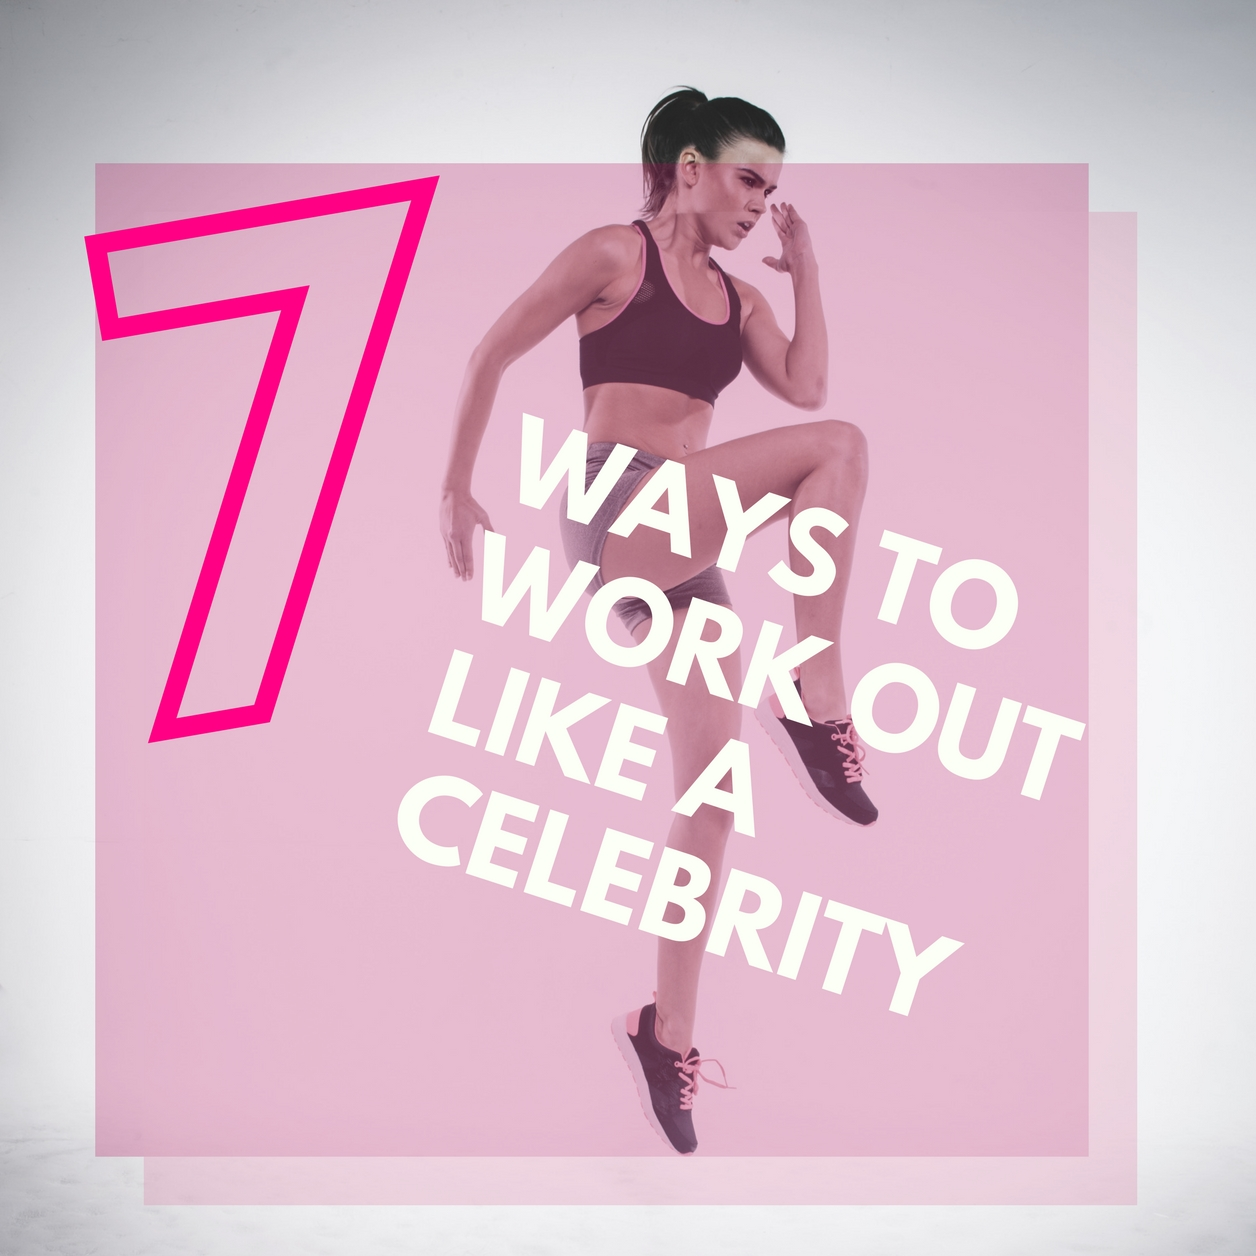 7 Ways to Work Out Like a Celebrity